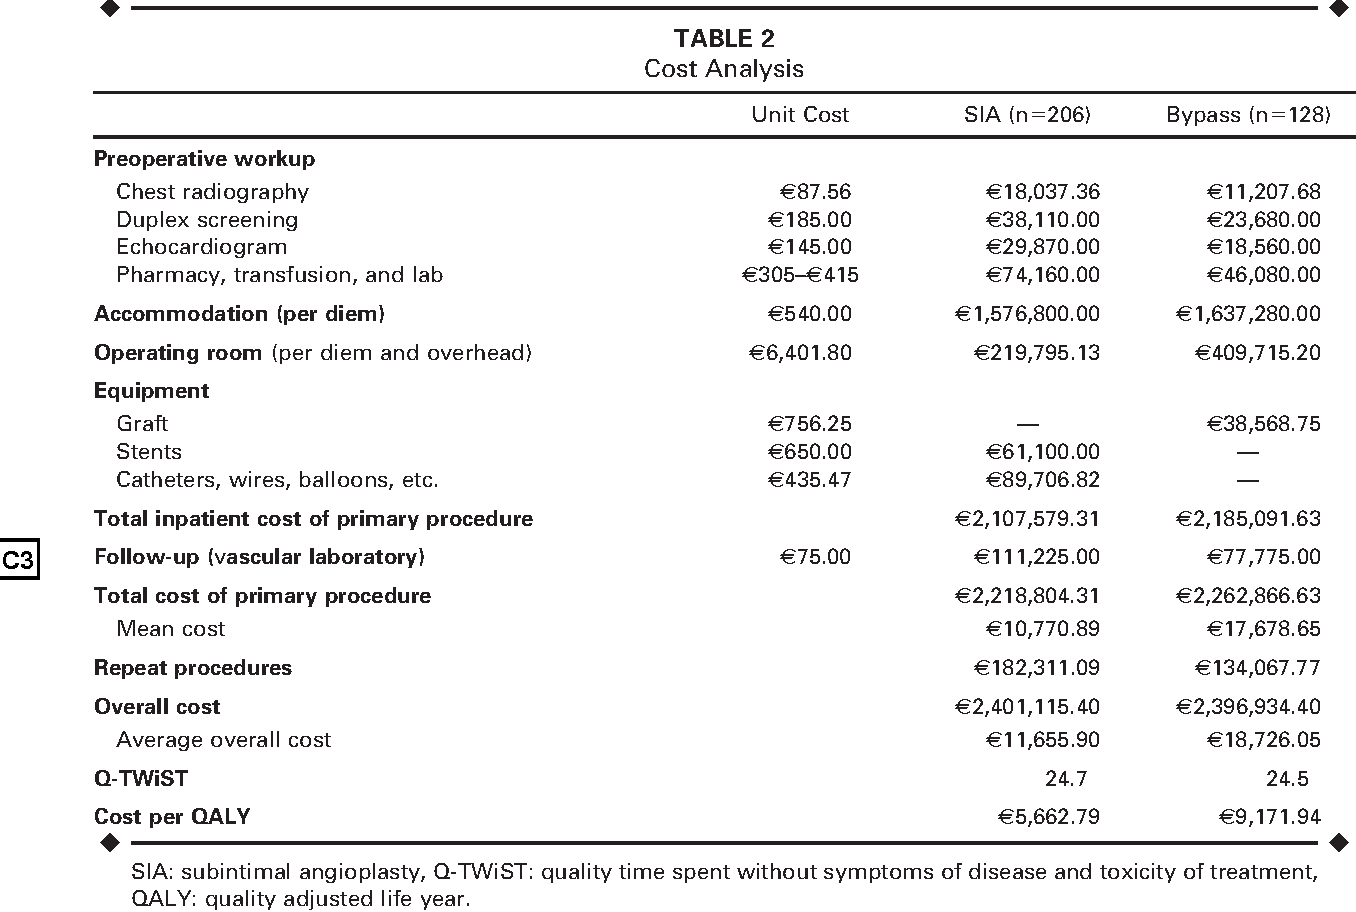 TABLE 2 Cost Analysis